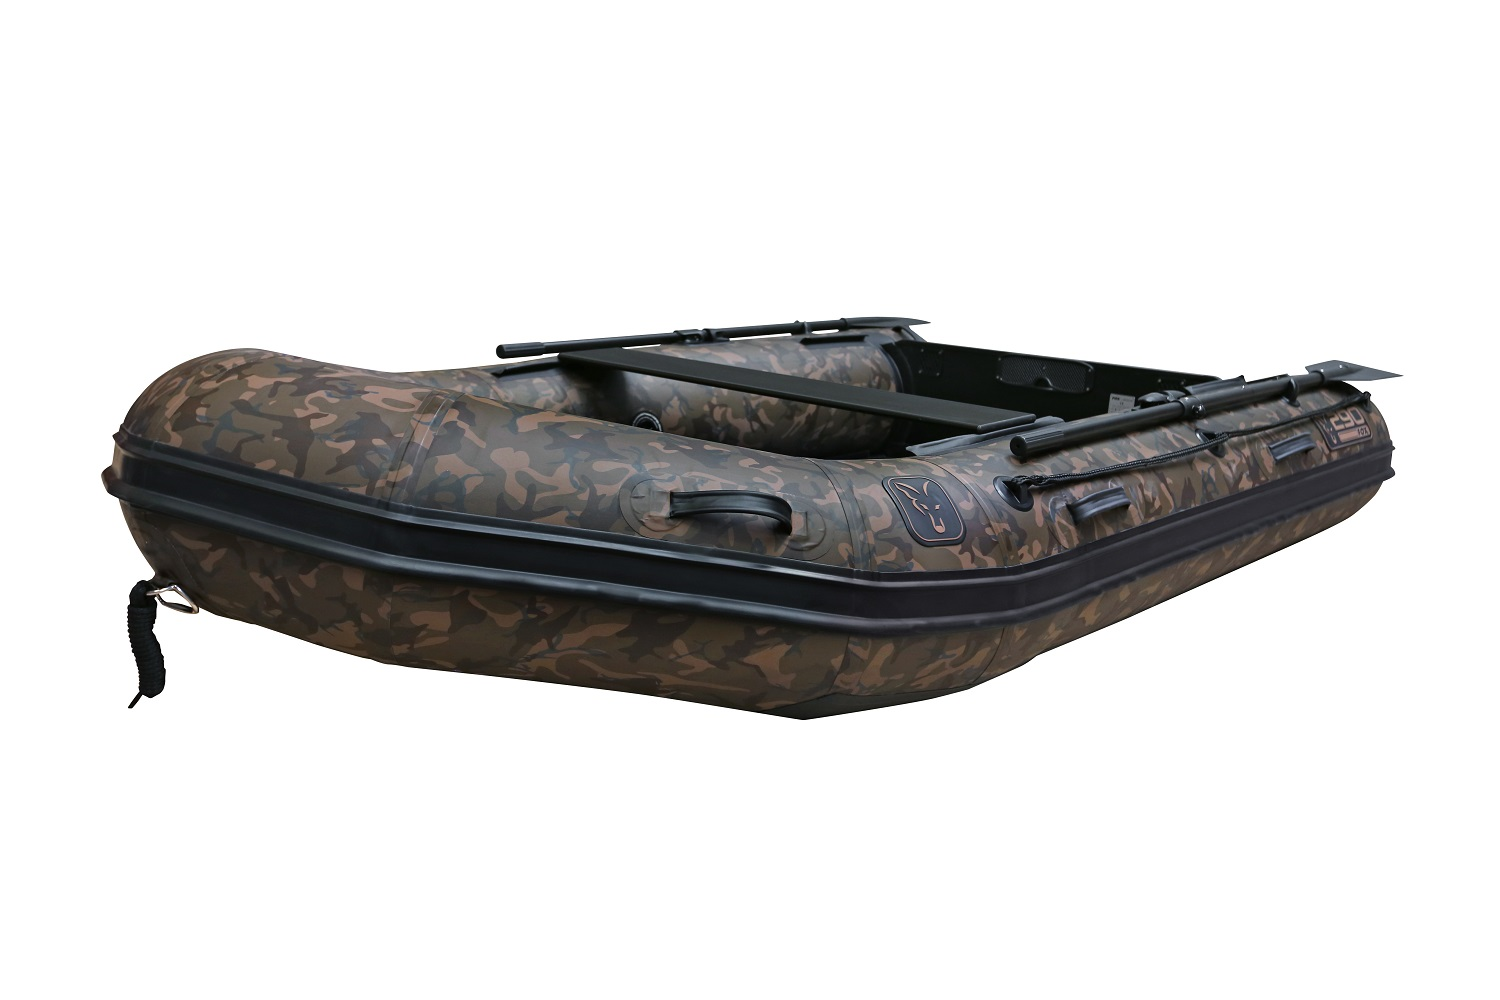 FOX 2.9m Camo Inflable Boat - Air Deck Black